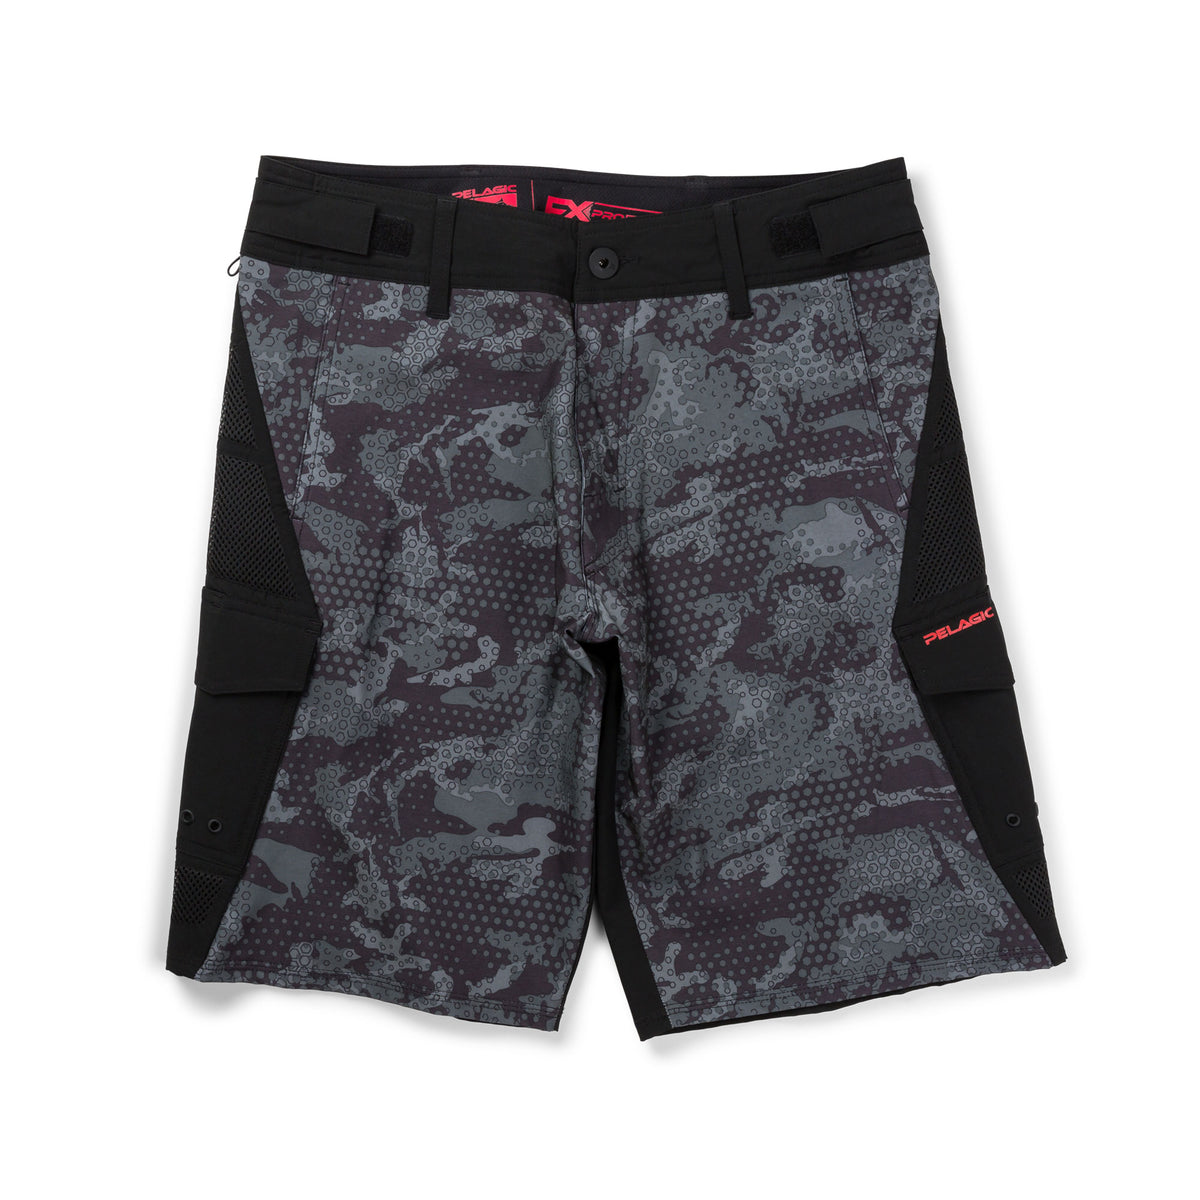 FX-PRO Tactical Fishing Shorts Big Image - 1